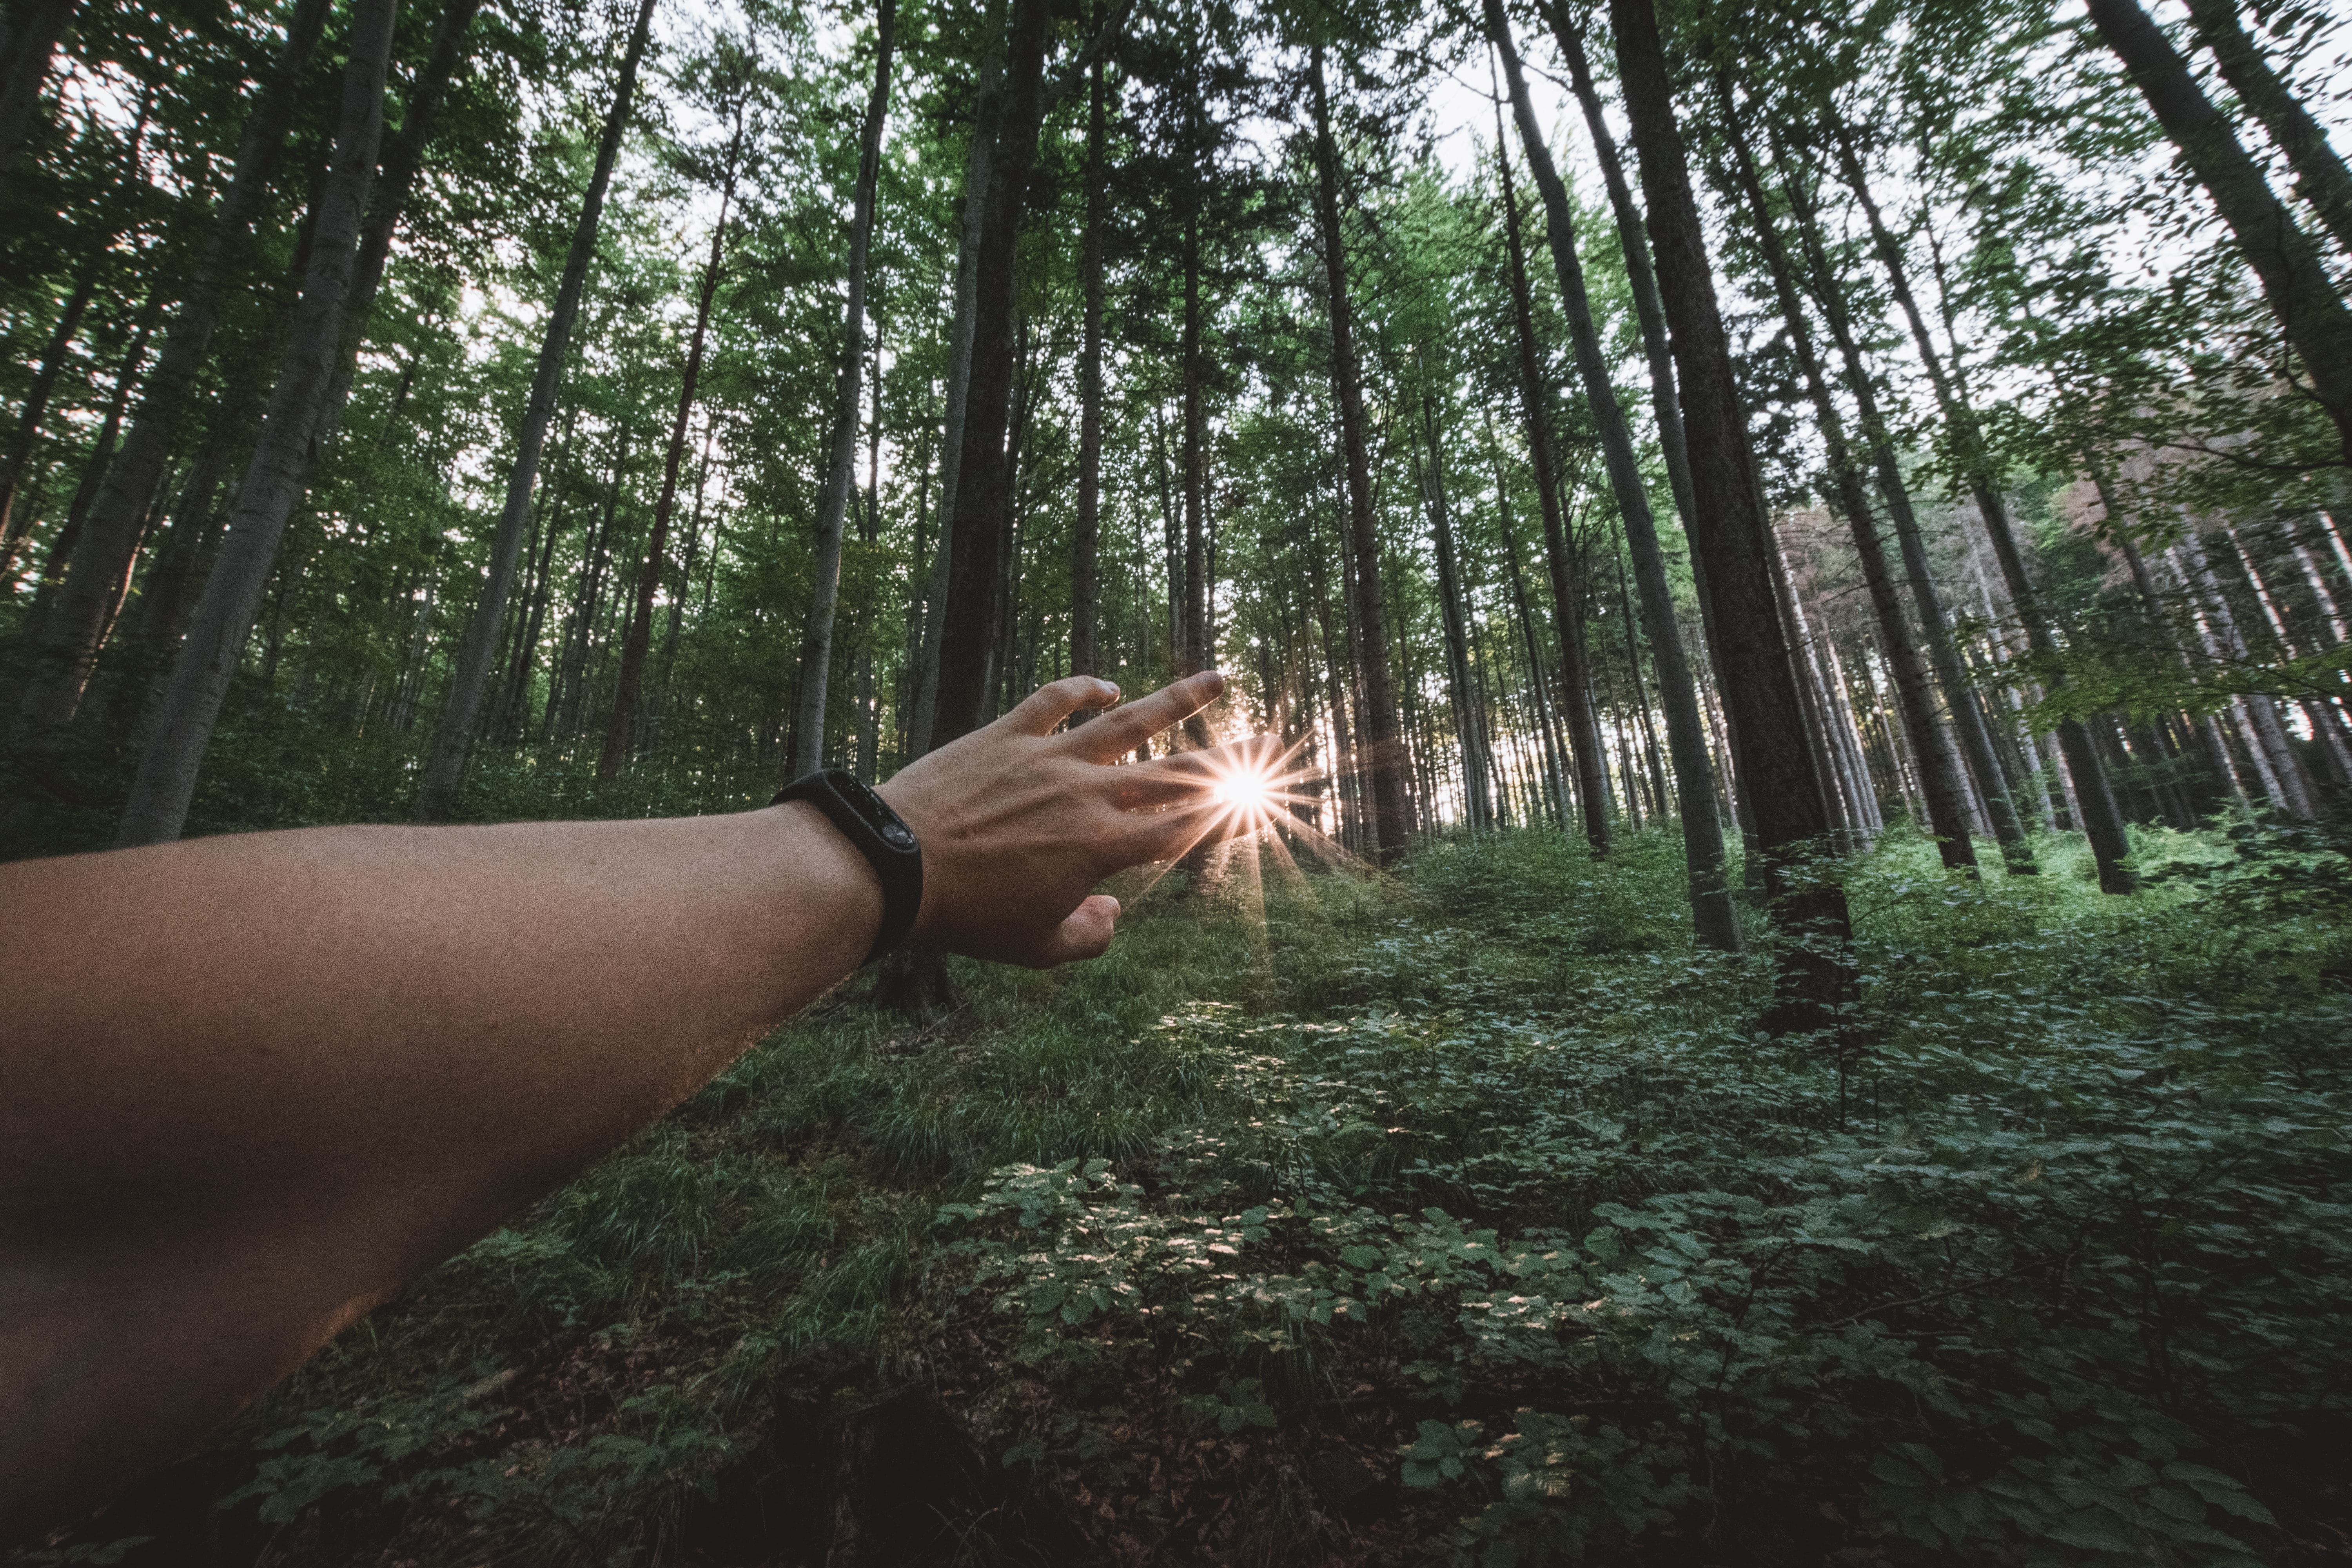 piercing sun on persons hand standing on forest